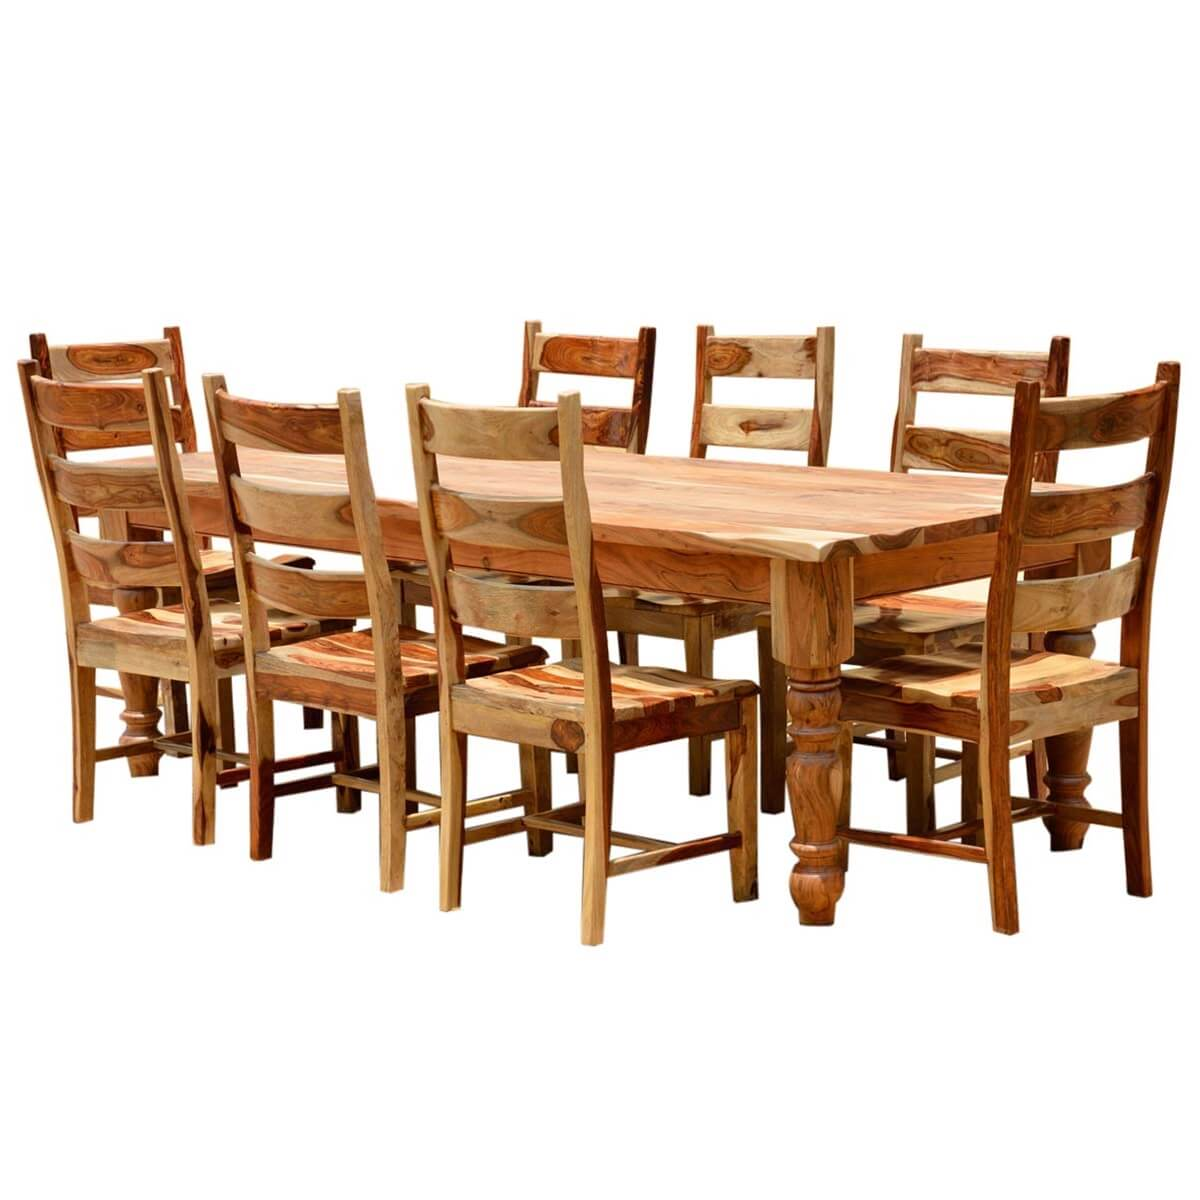 Rustic solid wood farmhouse dining room table chair set for Farmhouse dining room table set